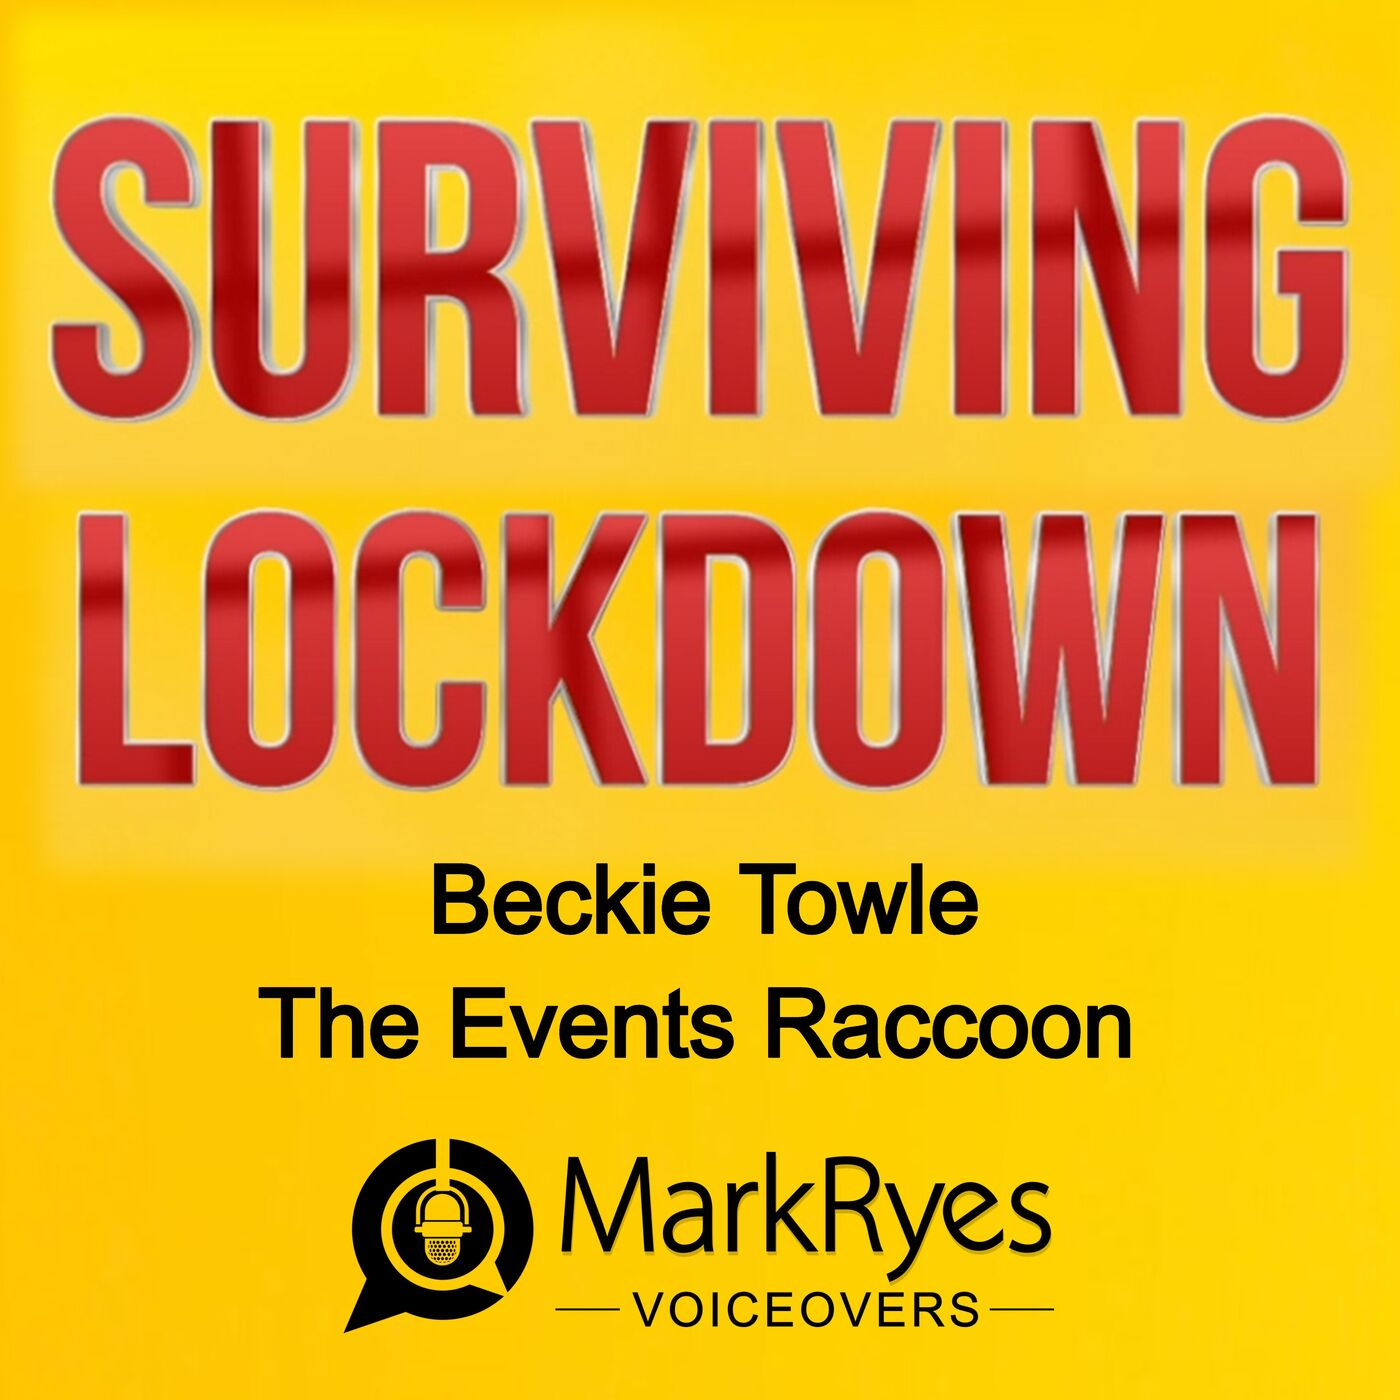 Beckie Towle - The Events Raccoon